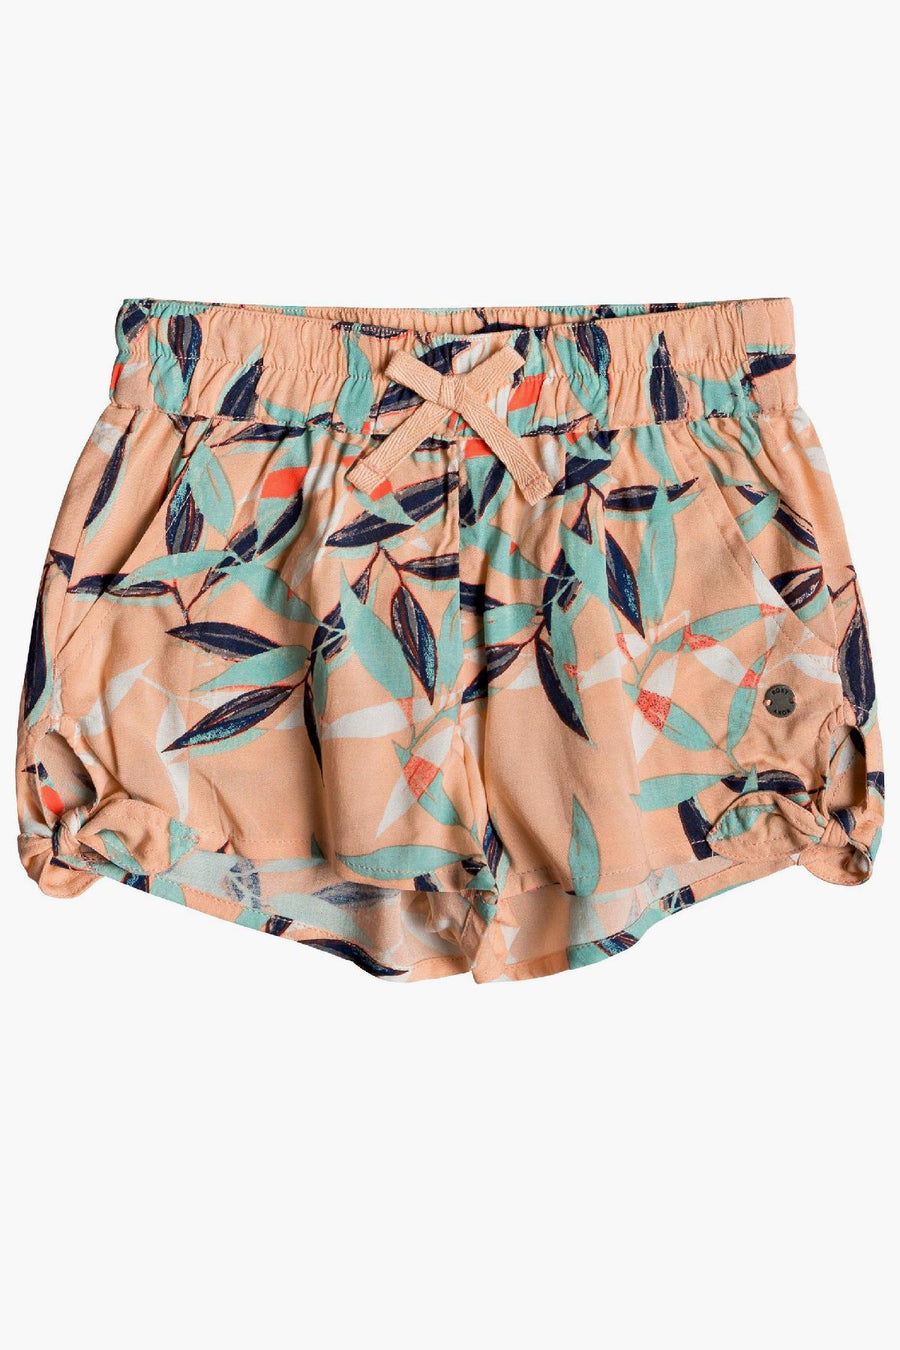 Roxy West South Shorts